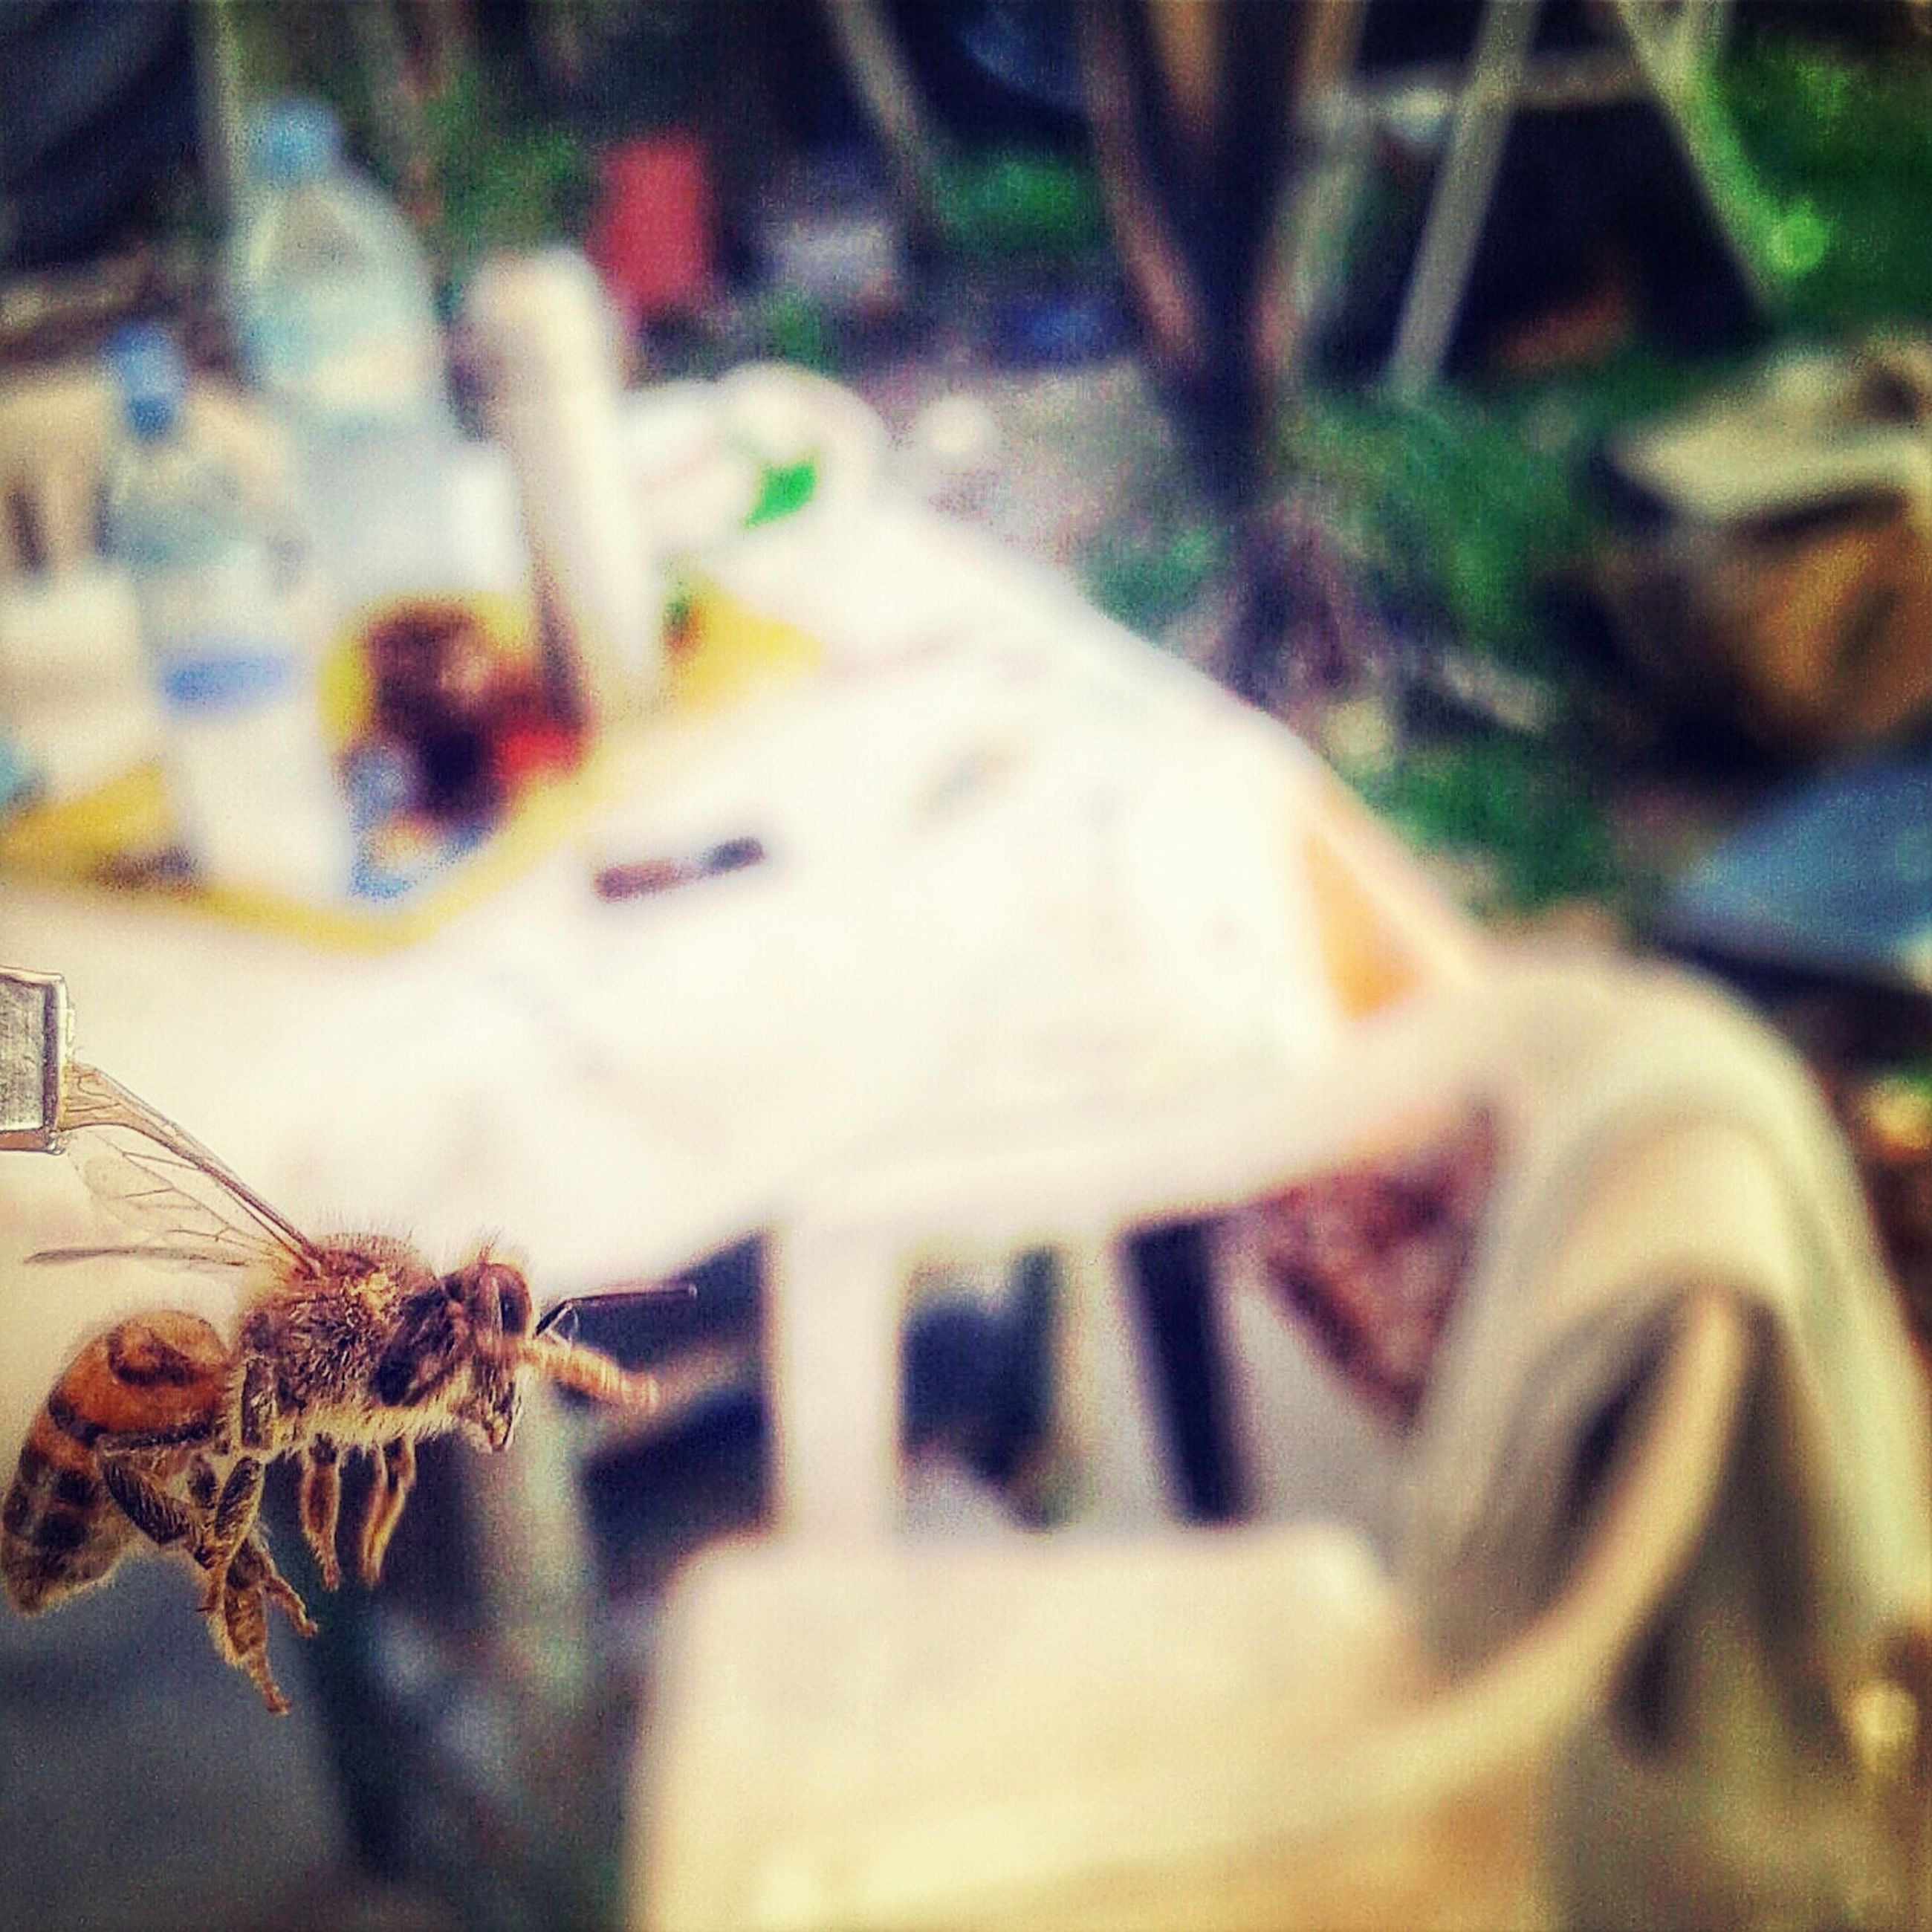 selective focus, close-up, focus on foreground, indoors, animal themes, no people, one animal, insect, day, animals in the wild, art and craft, wildlife, creativity, plant, dry, nature, animal representation, dead animal, high angle view